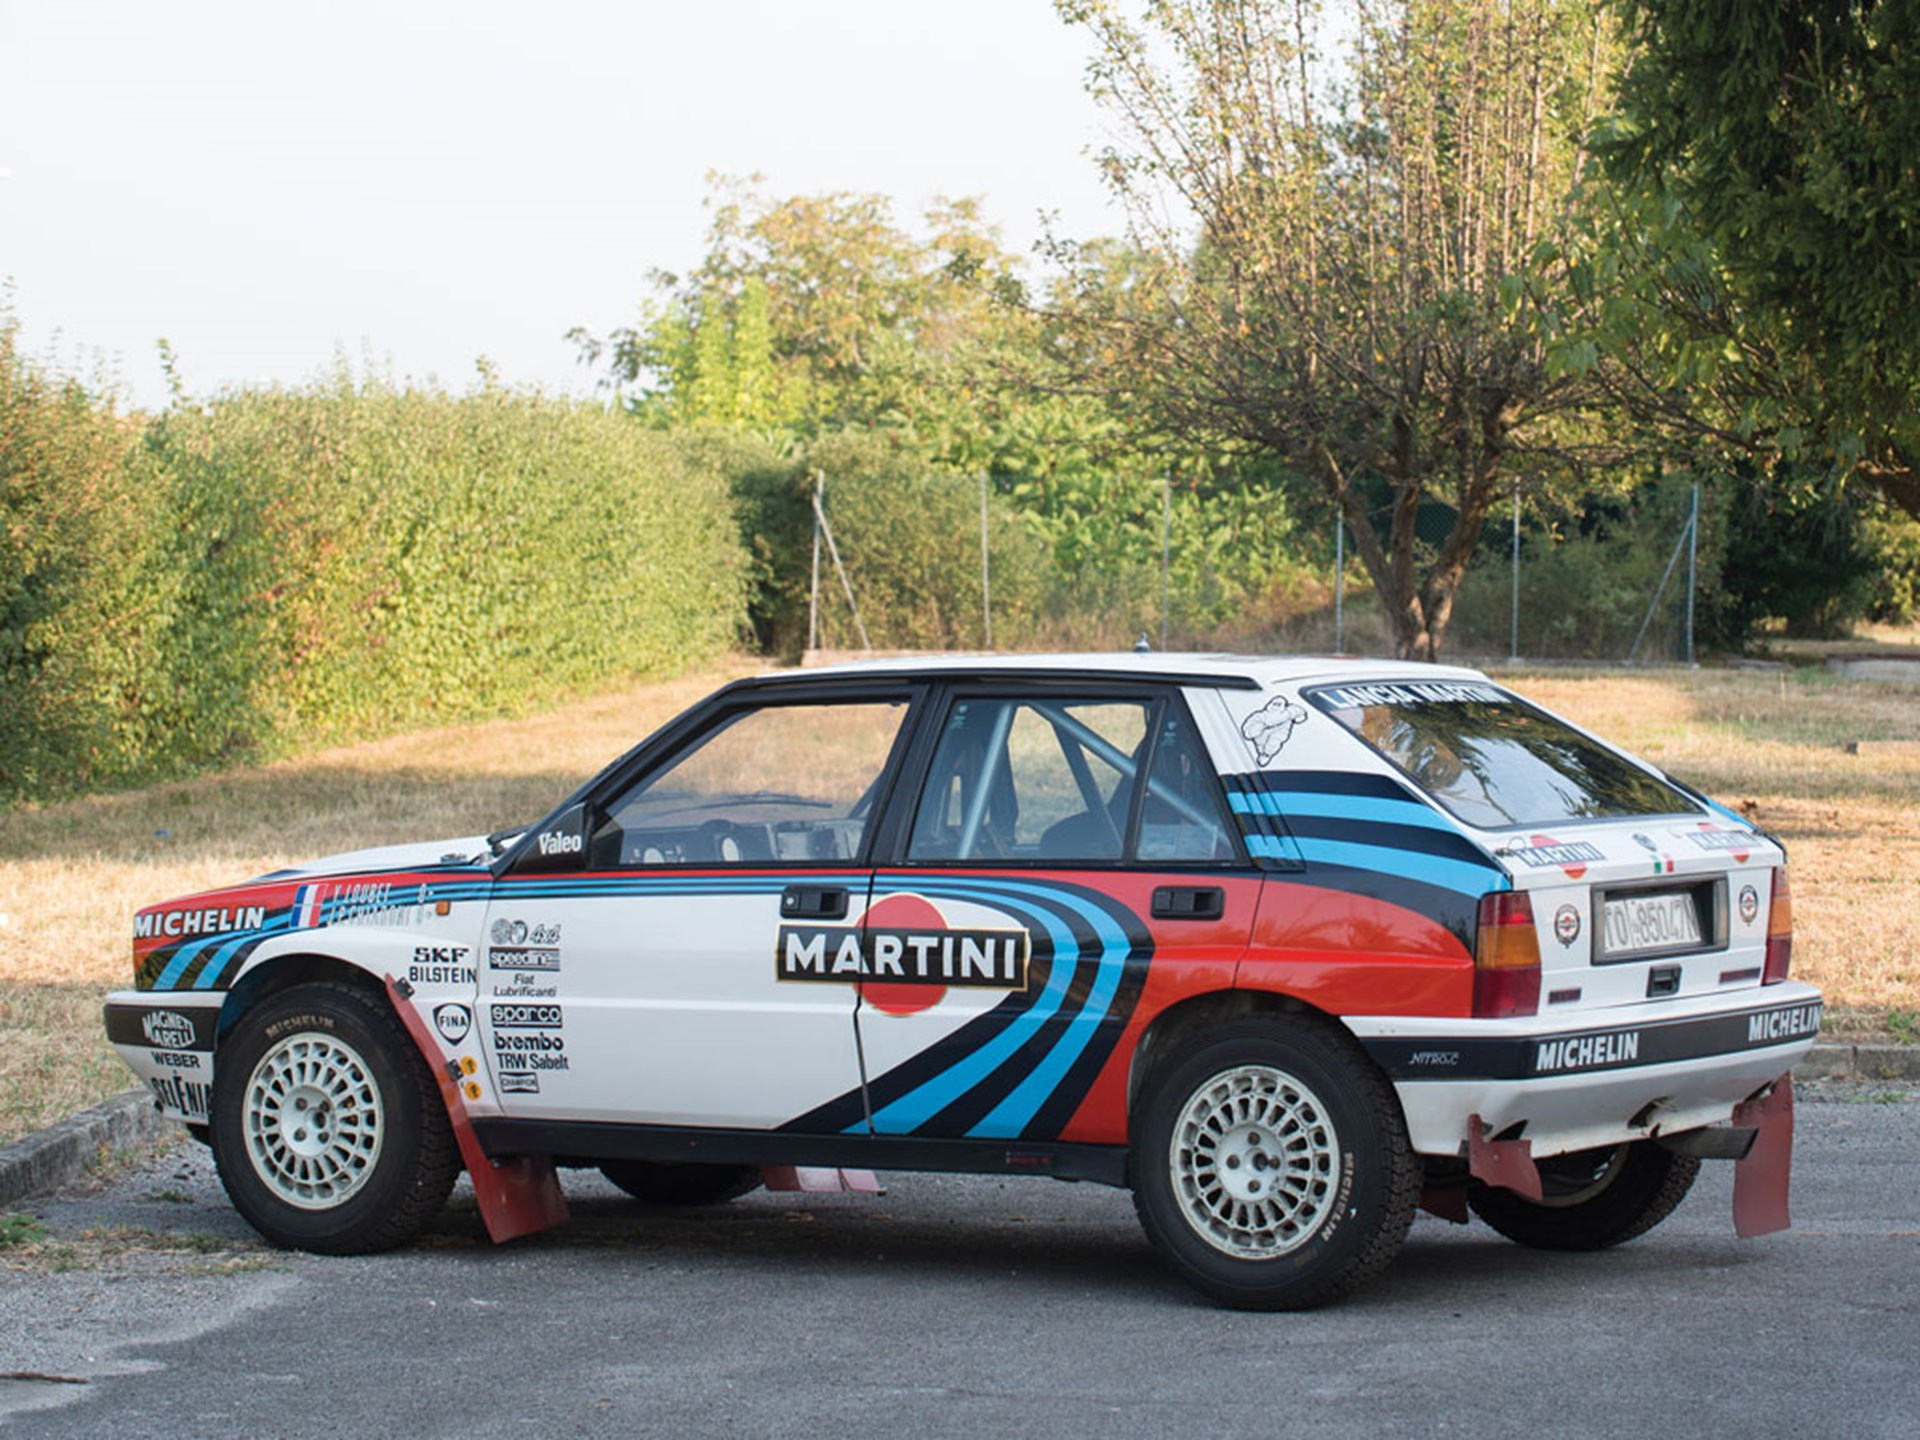 1989 Lancia Delta HF Integrale 16V Group A 'Ufficiale'